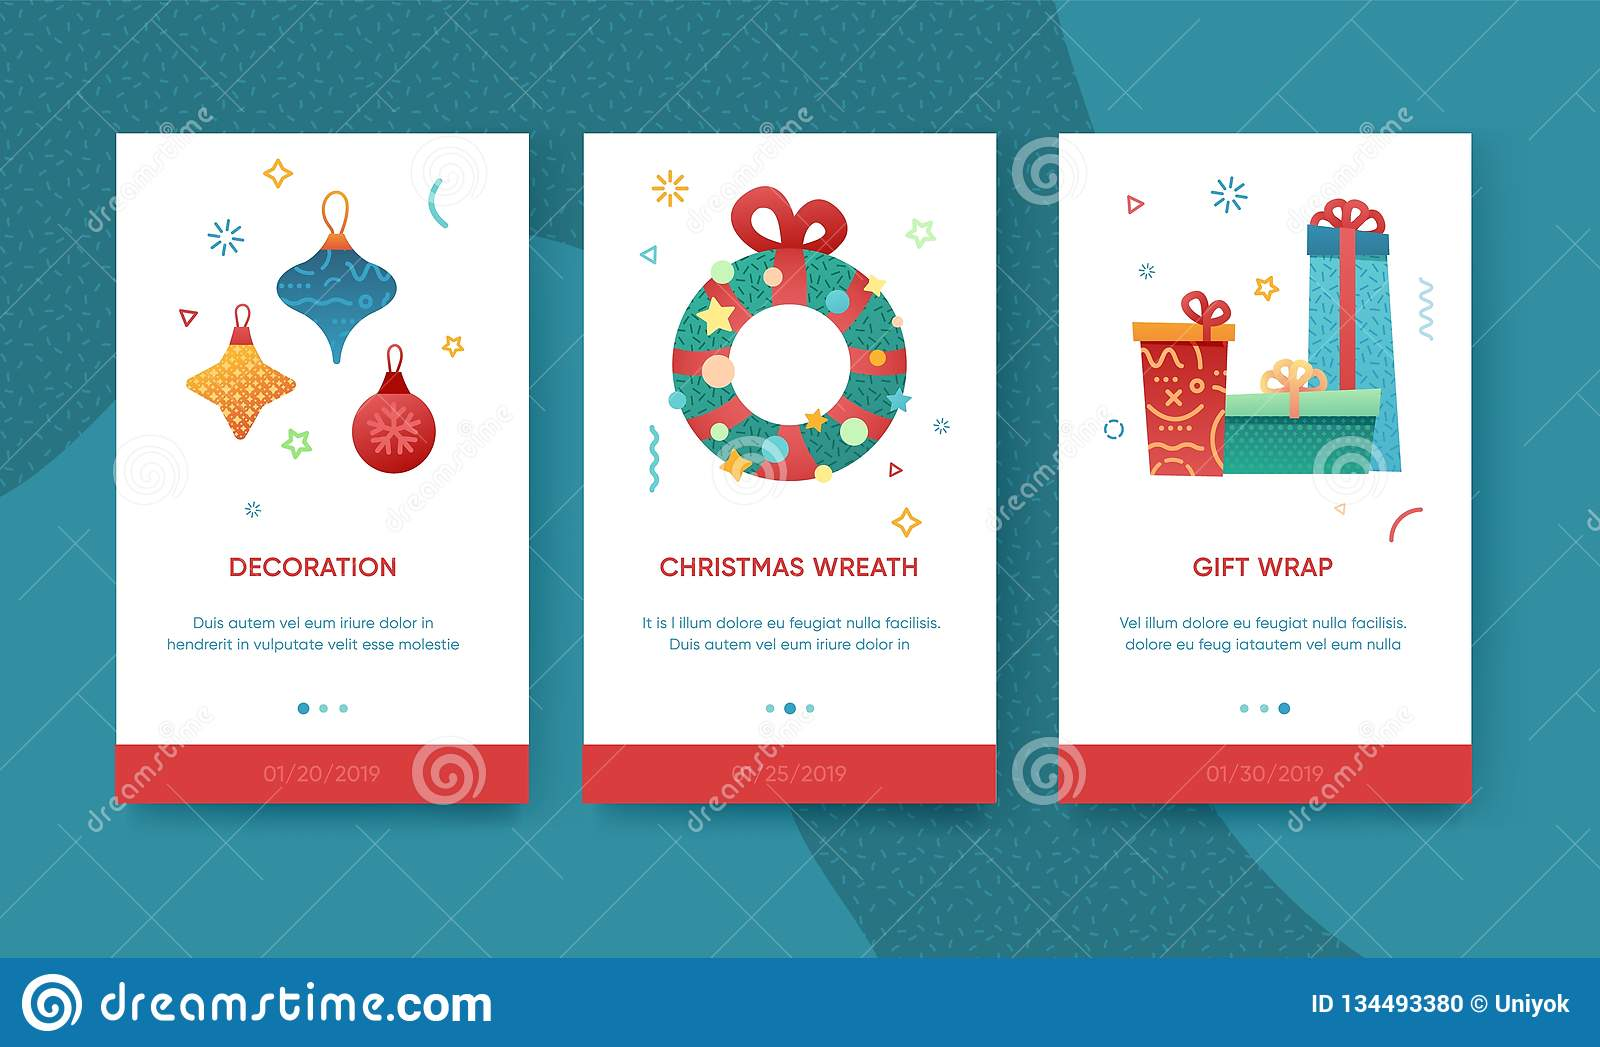 90851b3c43362 Design winter holidays UI template. Merry Christmas and Happy New year  website layout. Flat Christmas elements icon. Trendy illustration for  holiday offer ...